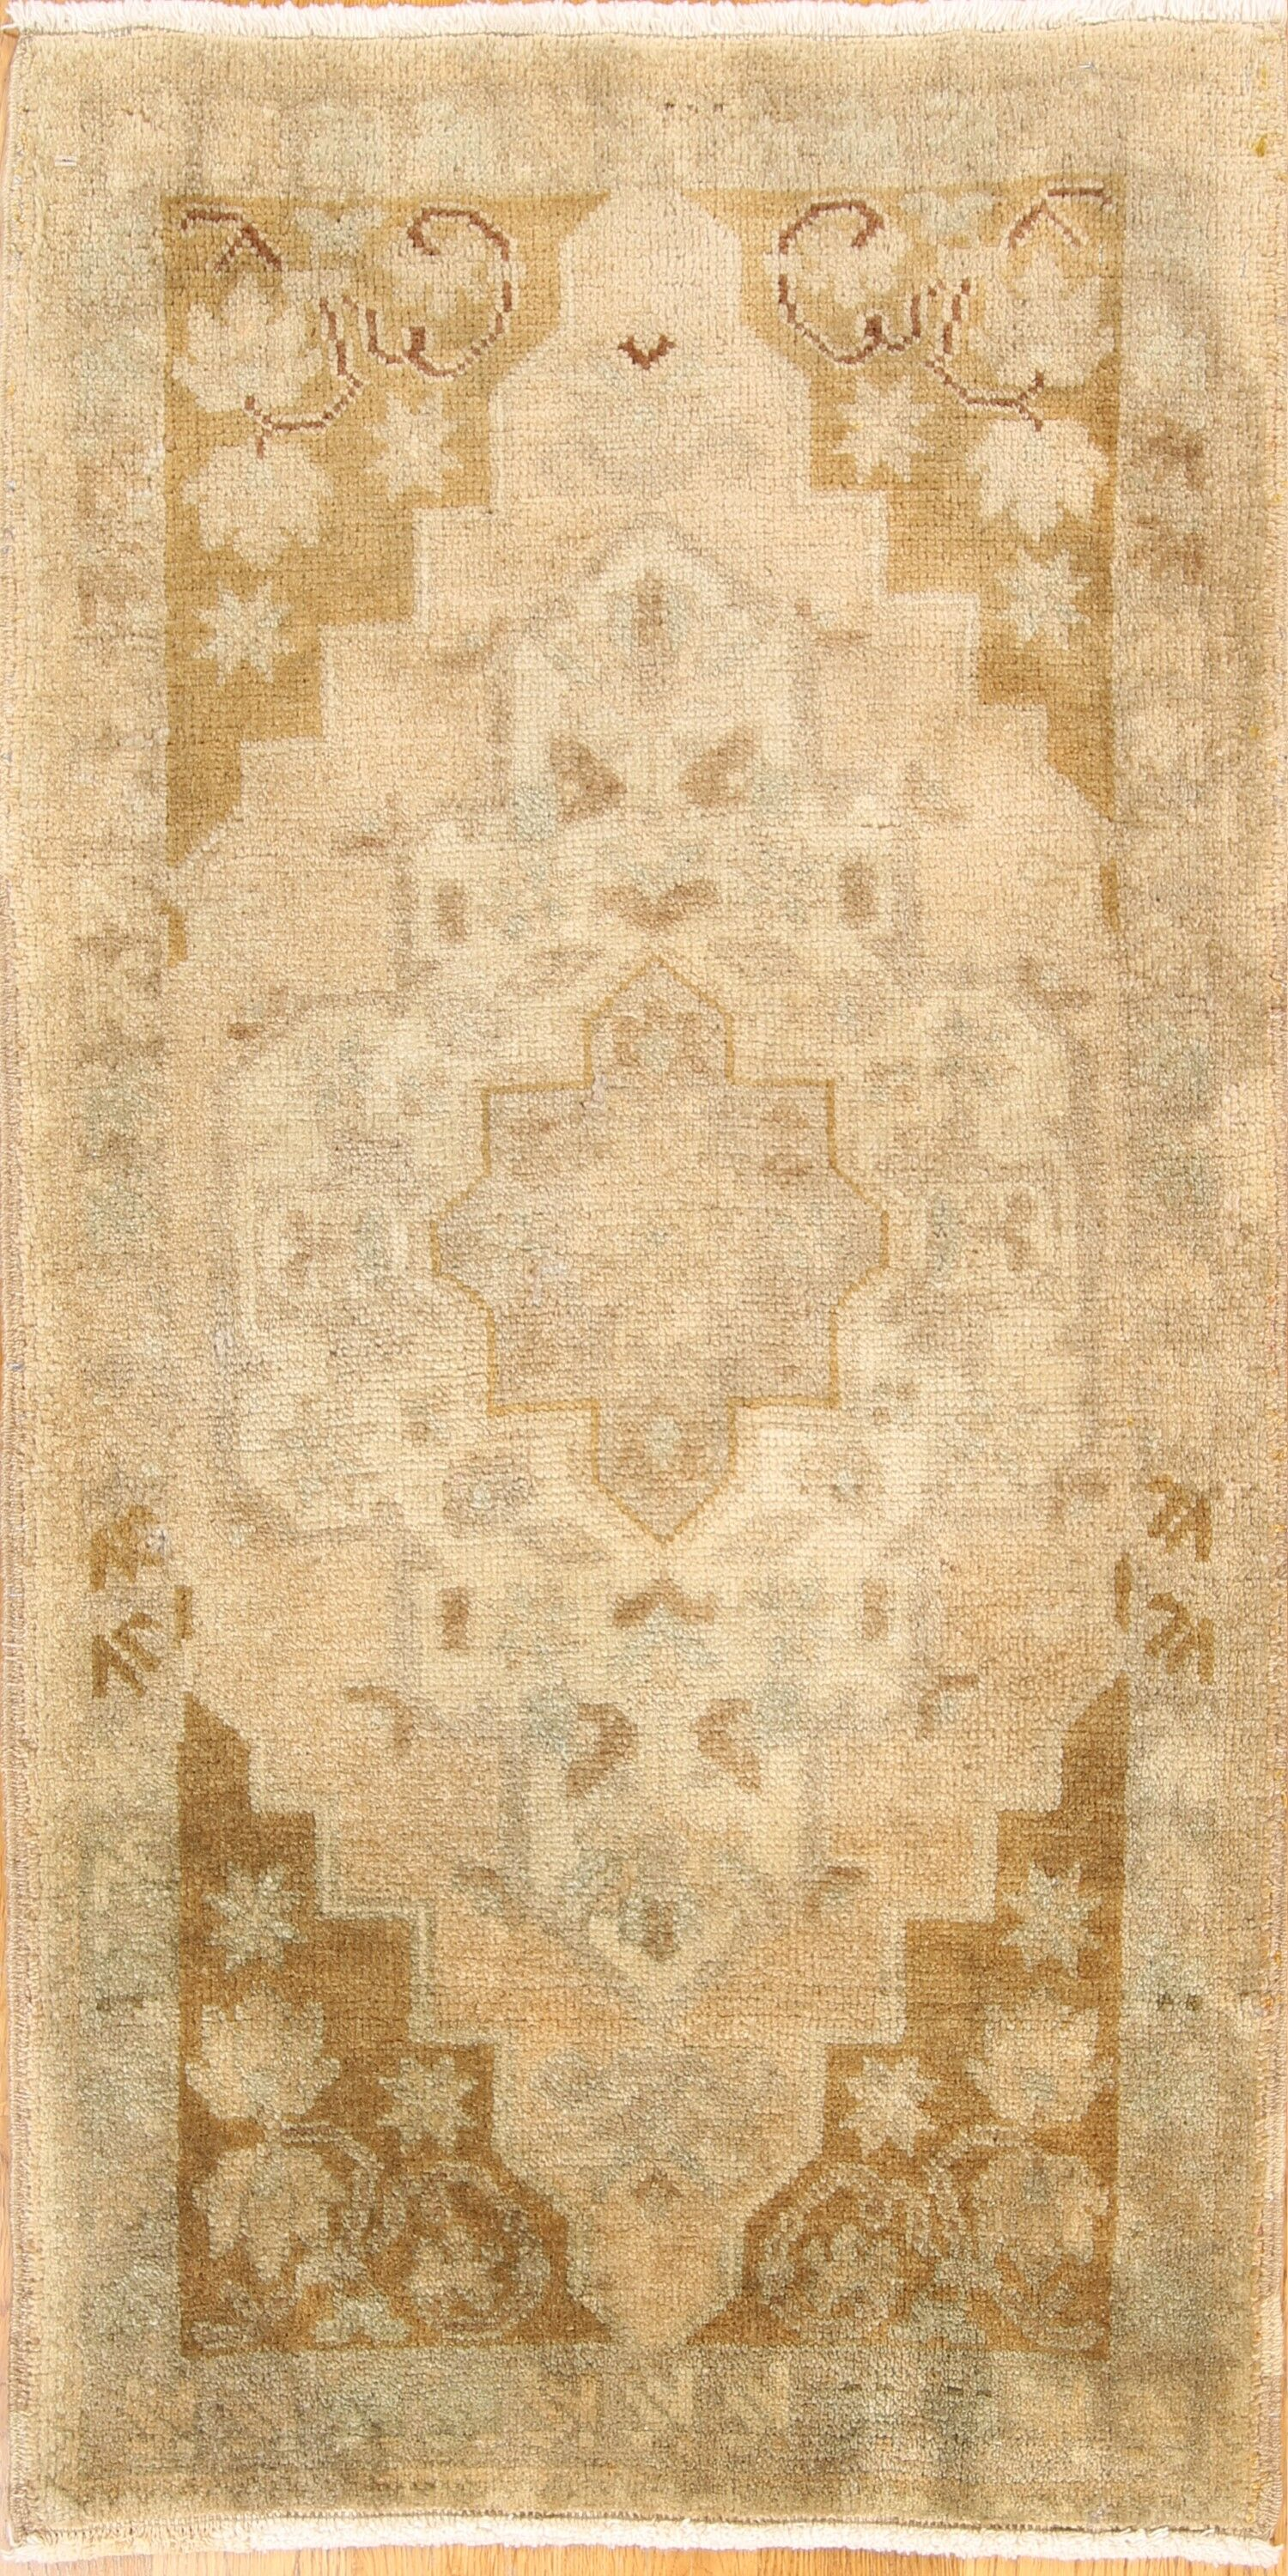 One-of-a-Kind Myrtle Avenue Oushak Turkish Oriental Hand-Knotted Wool Yellow/Gold Area Rug